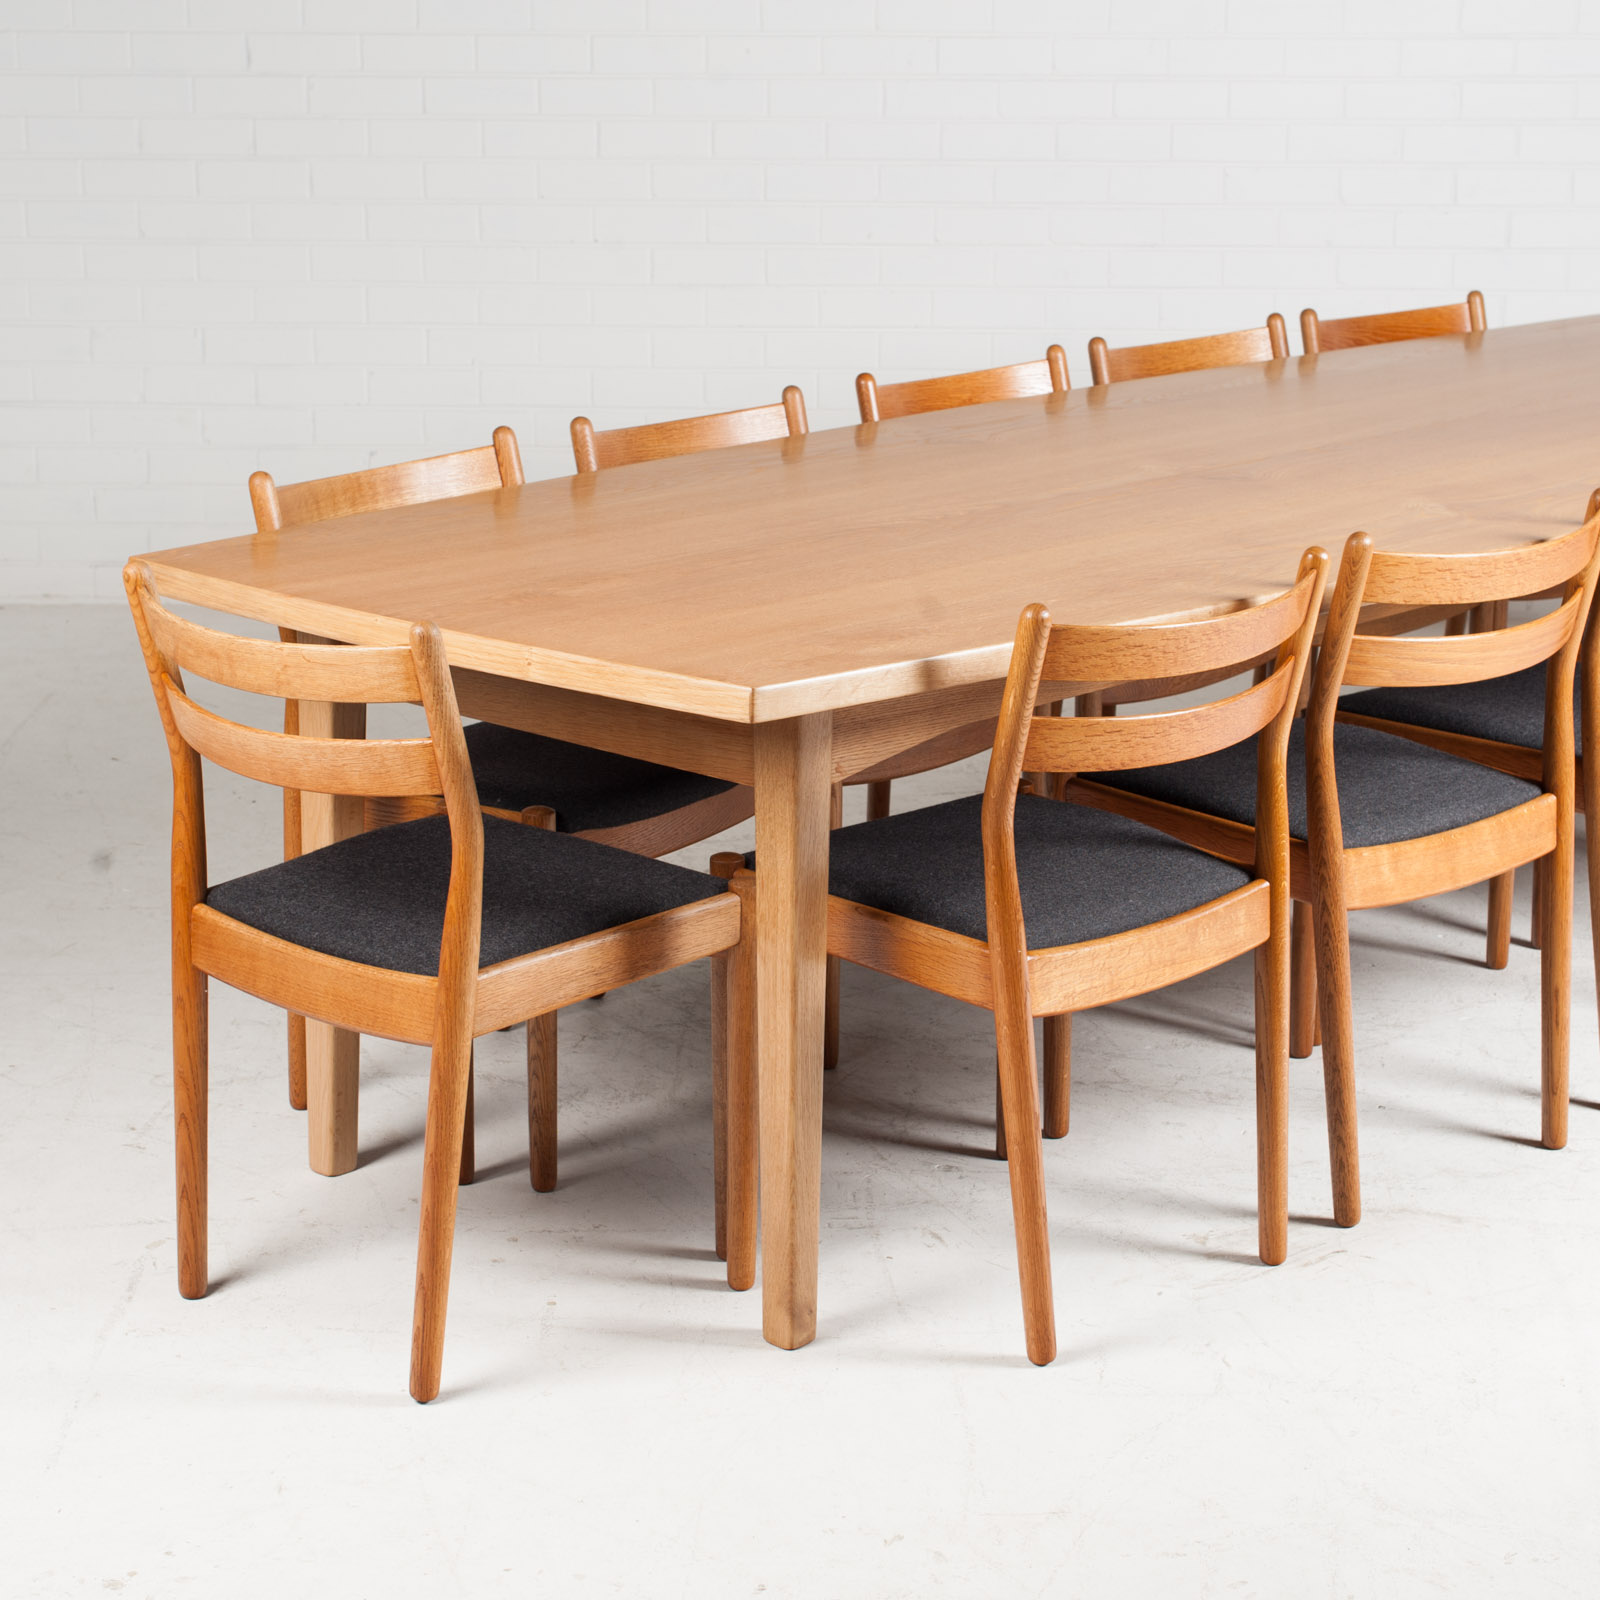 extra large dining table in oak with bow edge 1960s denmark modern times. Black Bedroom Furniture Sets. Home Design Ideas